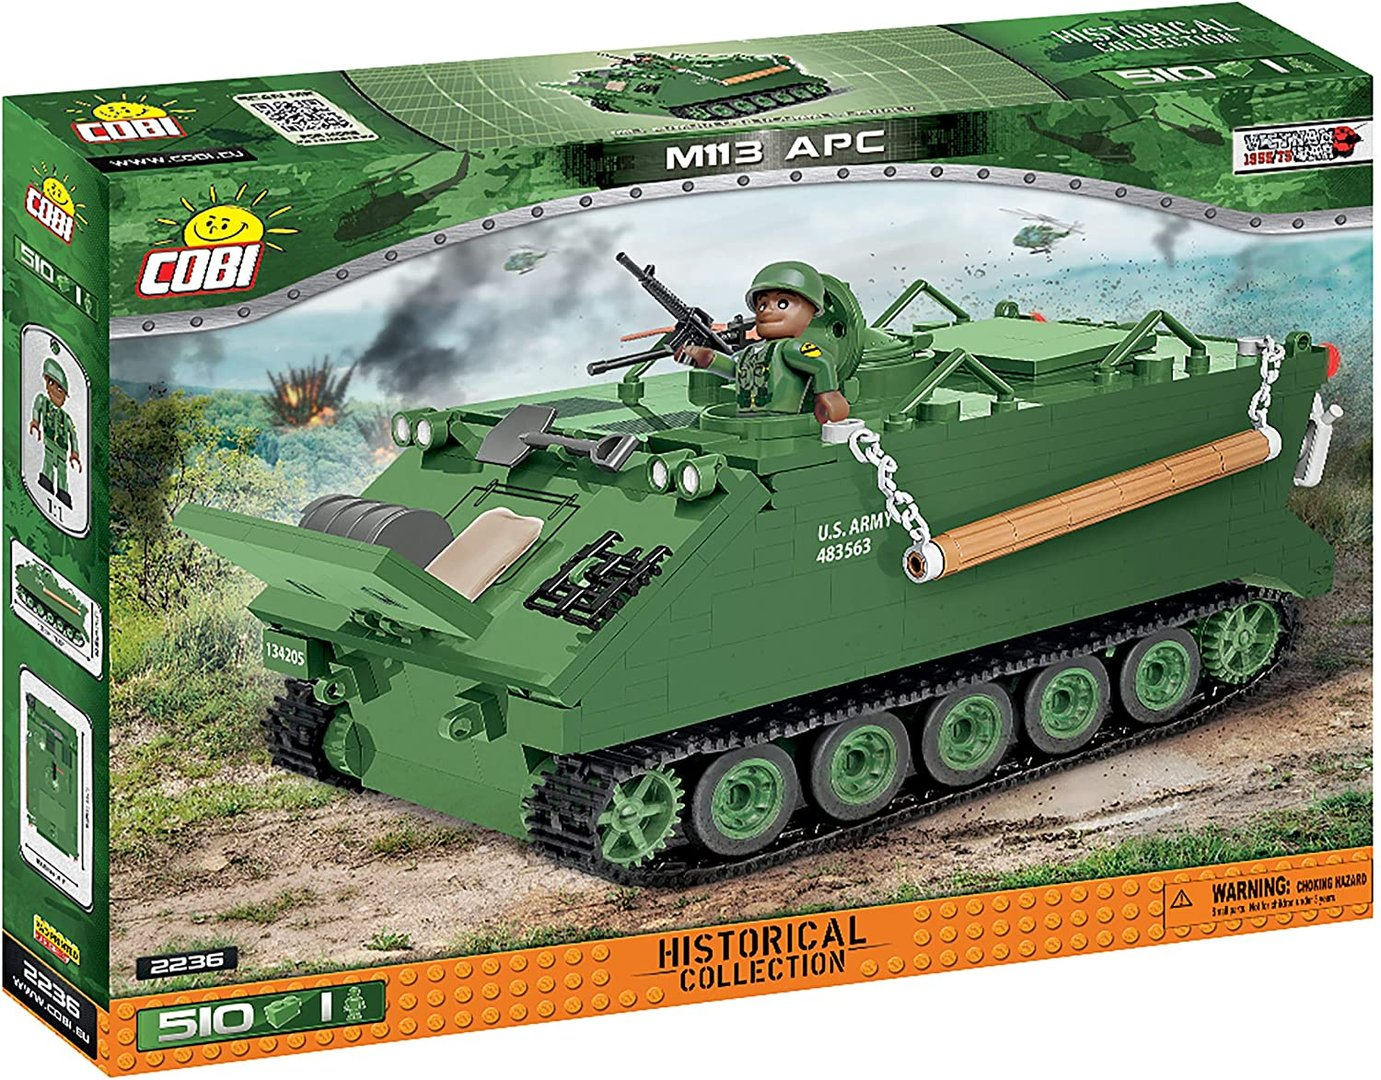 Cobi 2236 Tank M113 Armored Personal Carrier (Small Army) Panzer